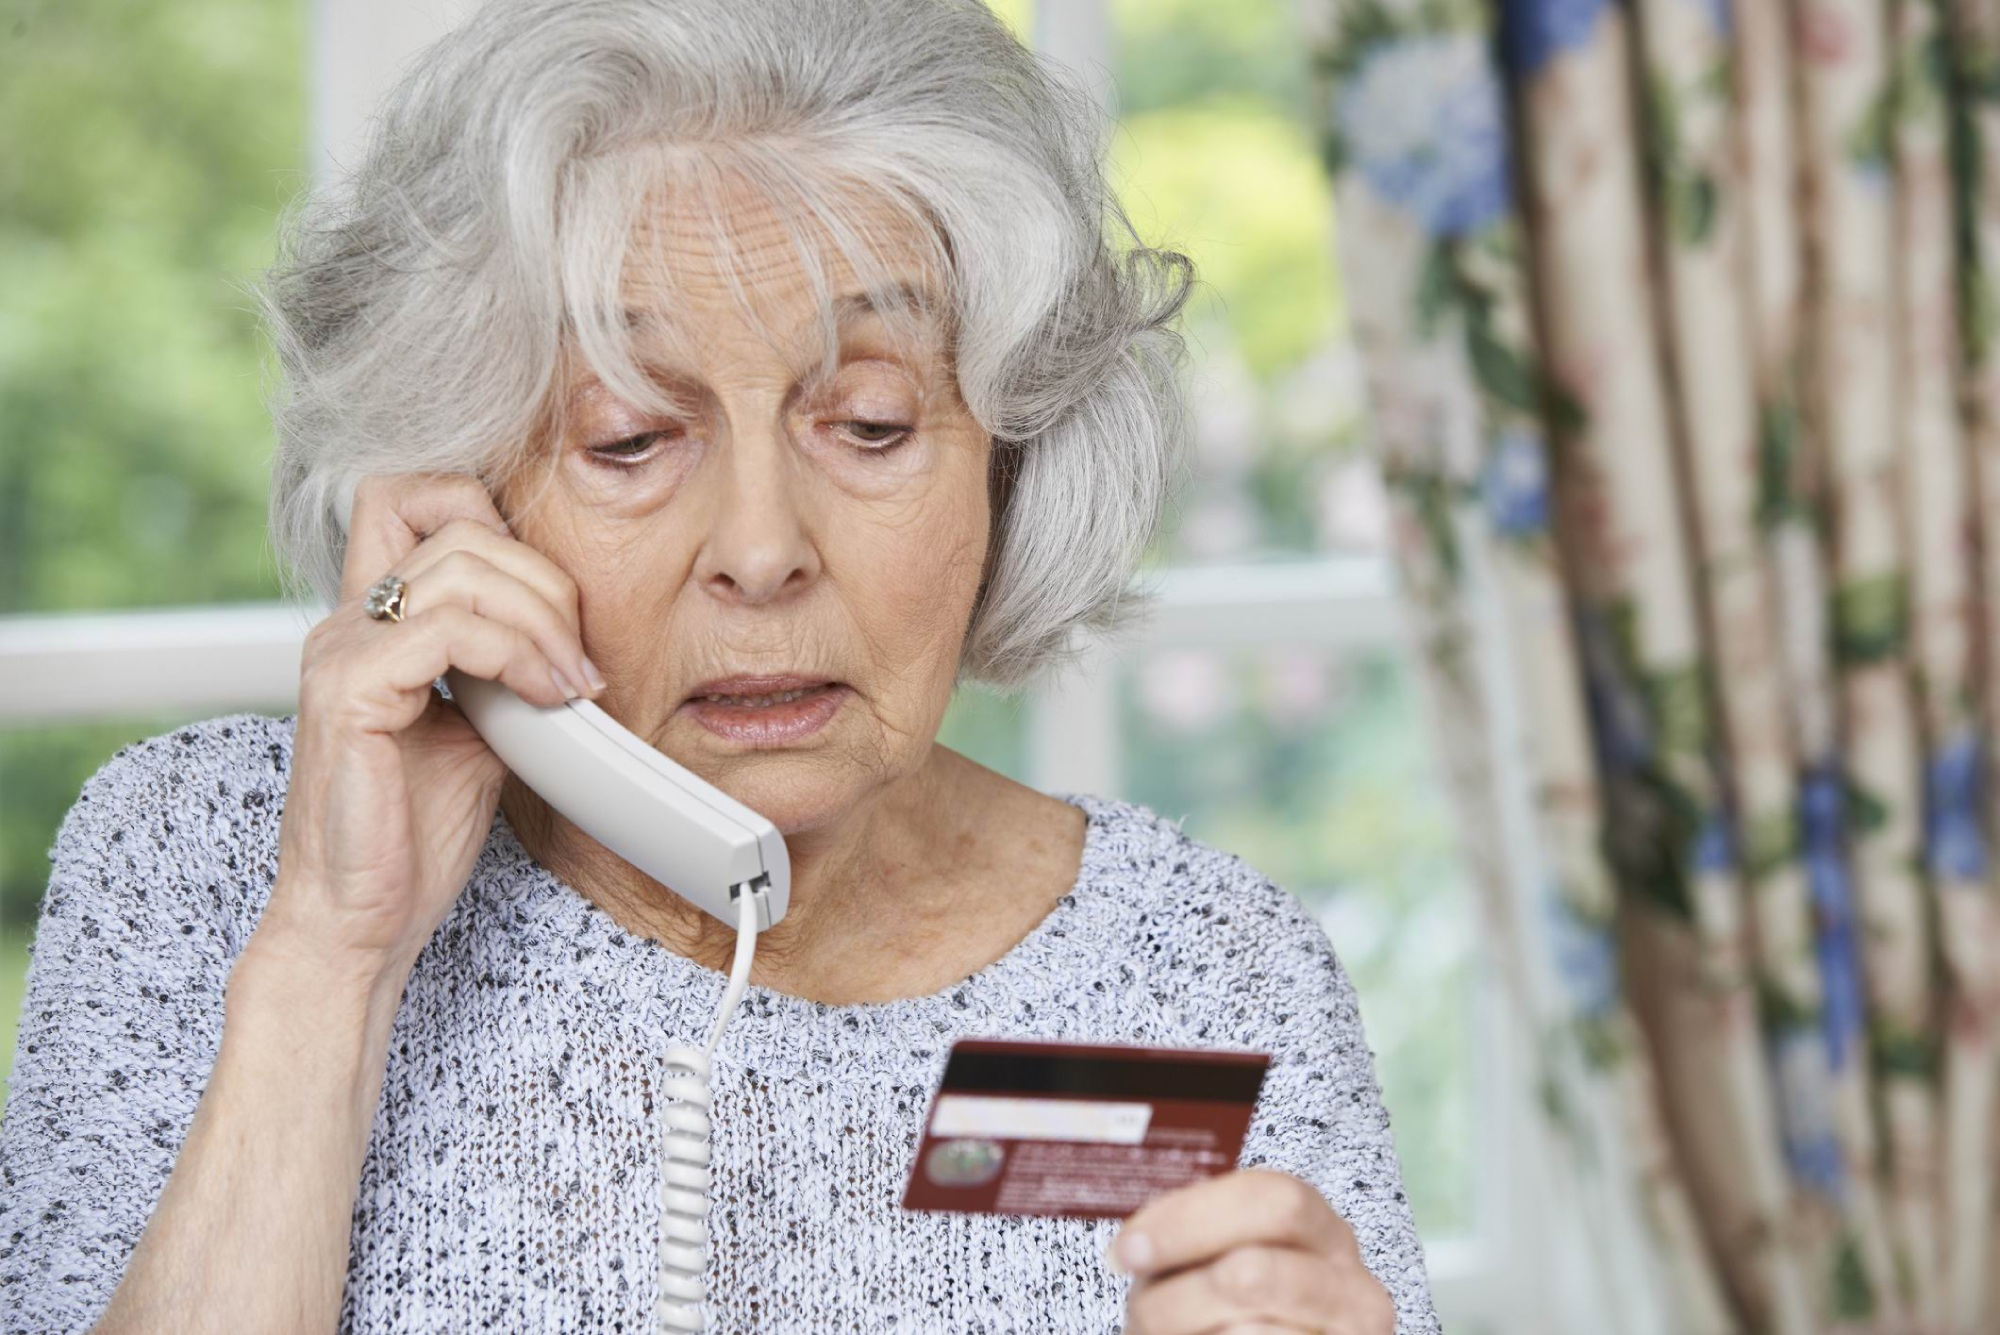 Police warn residents about international phone scammers